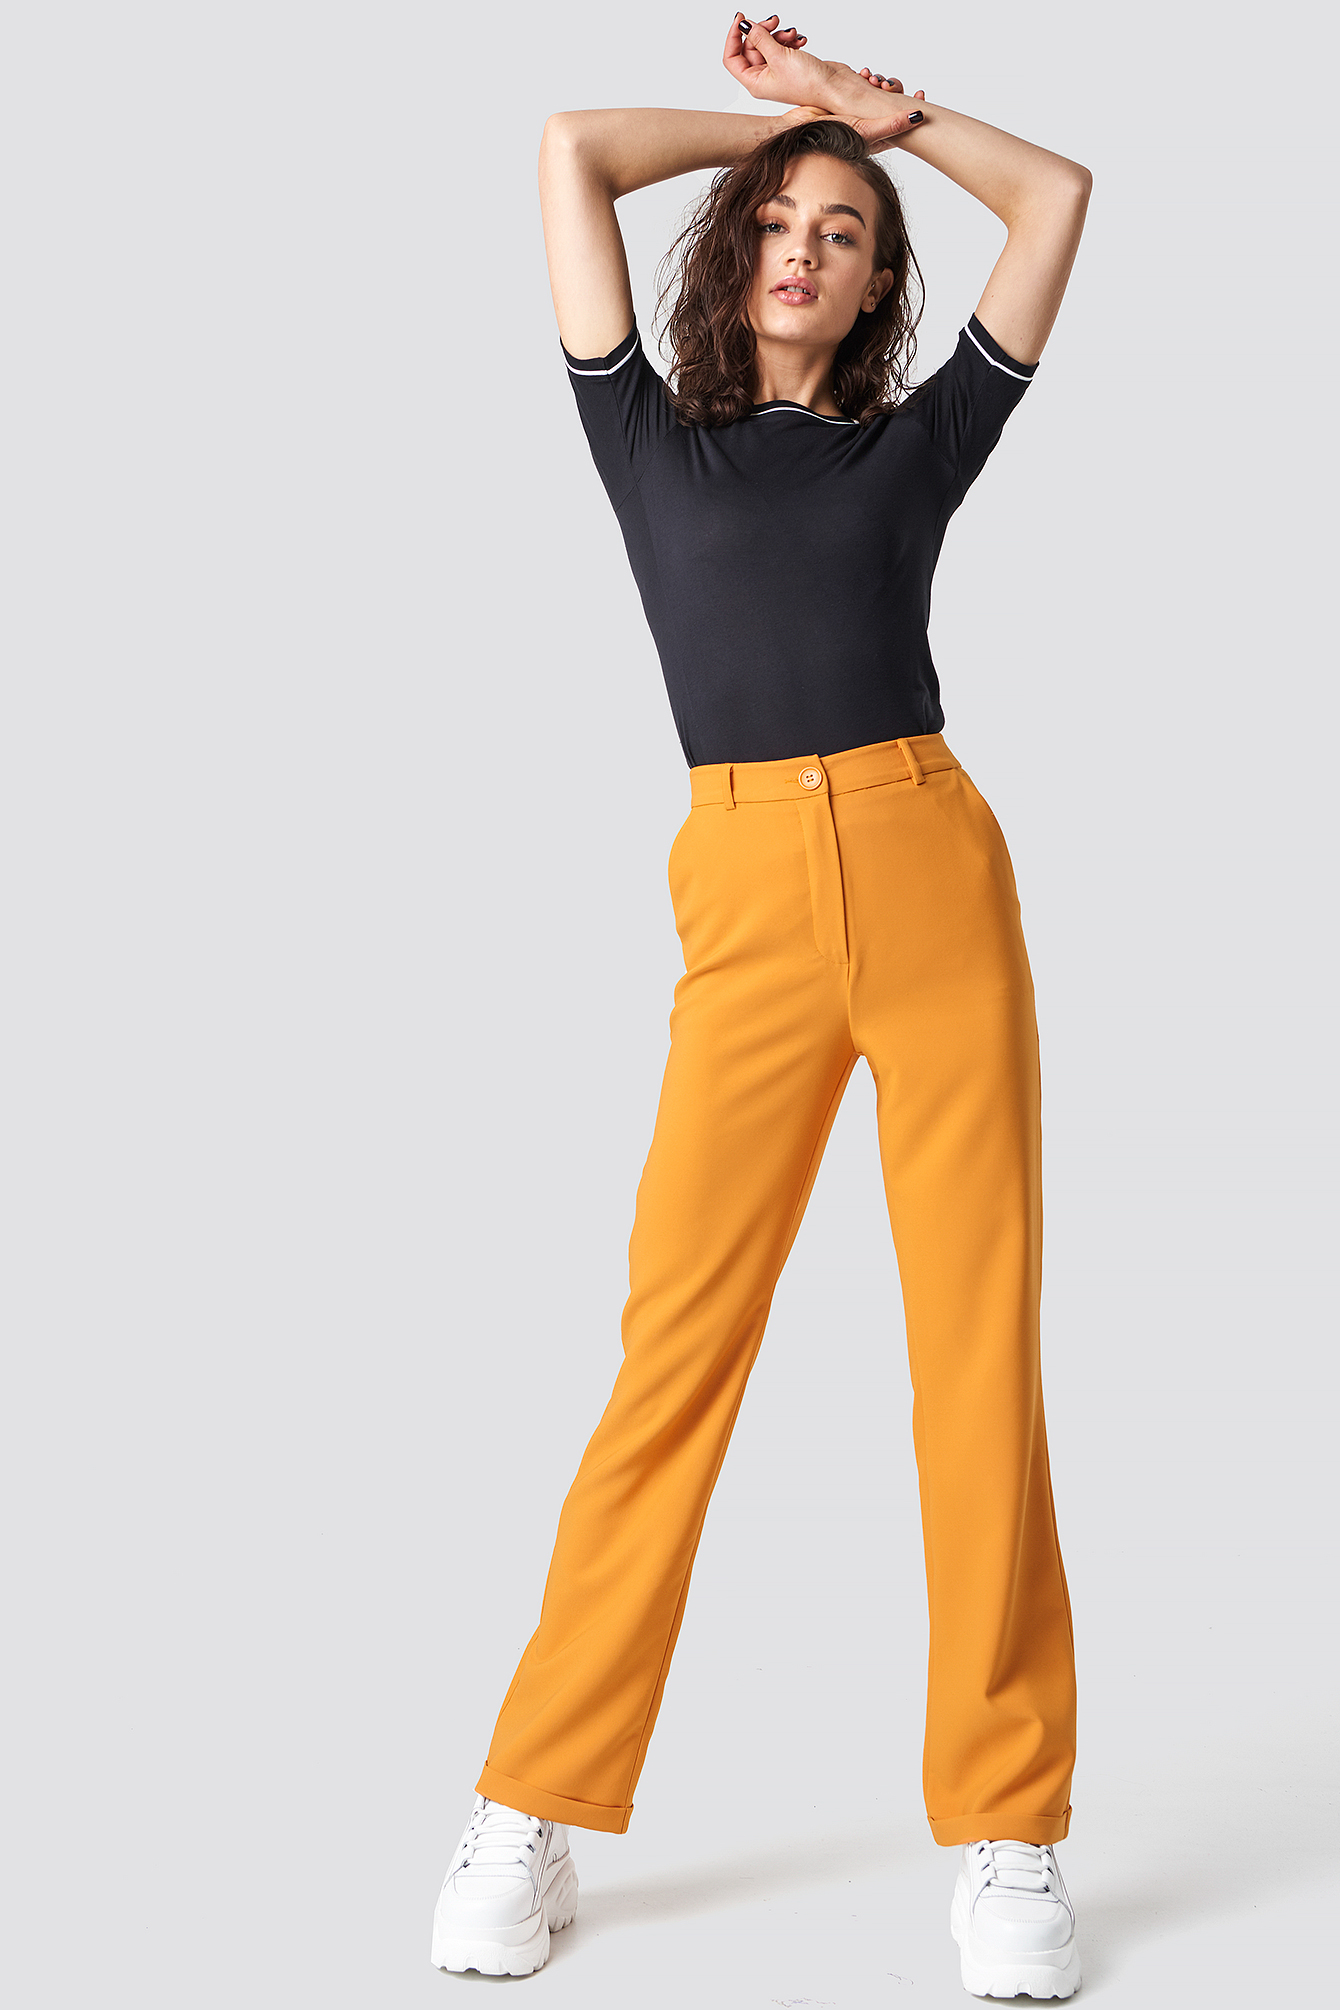 astrid olsen x na-kd -  Folded Suit Pants - Orange